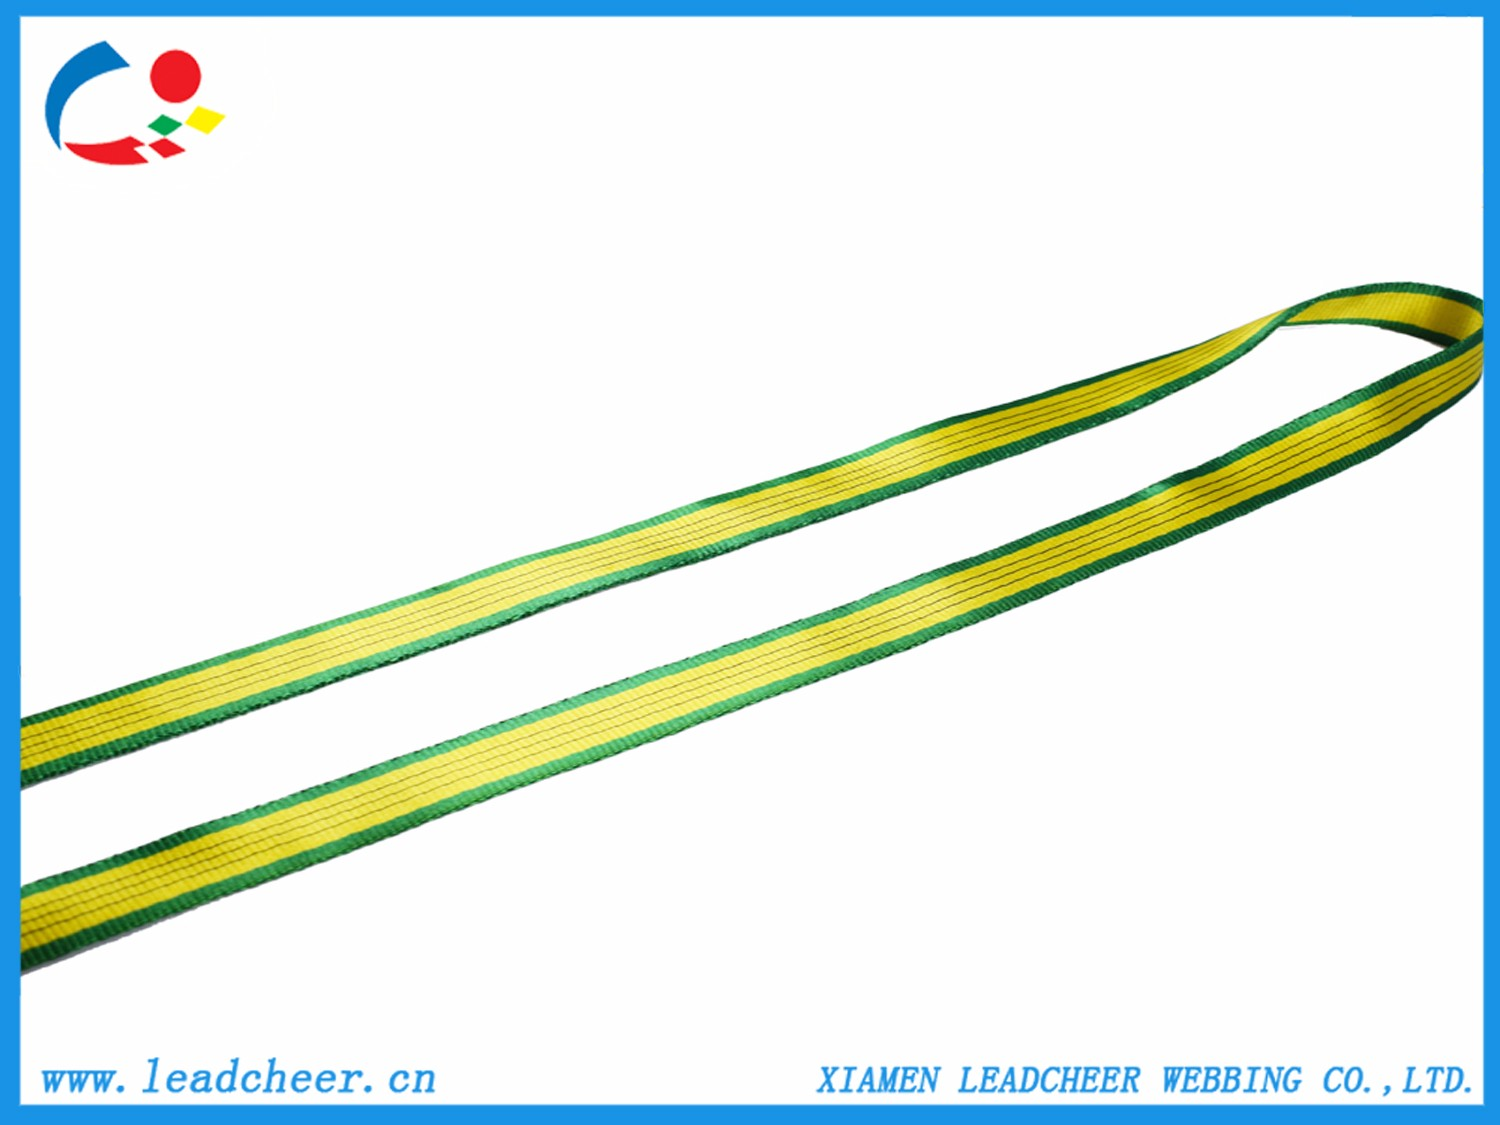 High quality Factory Nice Look Heavy Duty Slackline with Ratchets Quotes,China Factory Nice Look Heavy Duty Slackline with Ratchets Factory,Factory Nice Look Heavy Duty Slackline with Ratchets Purchasing